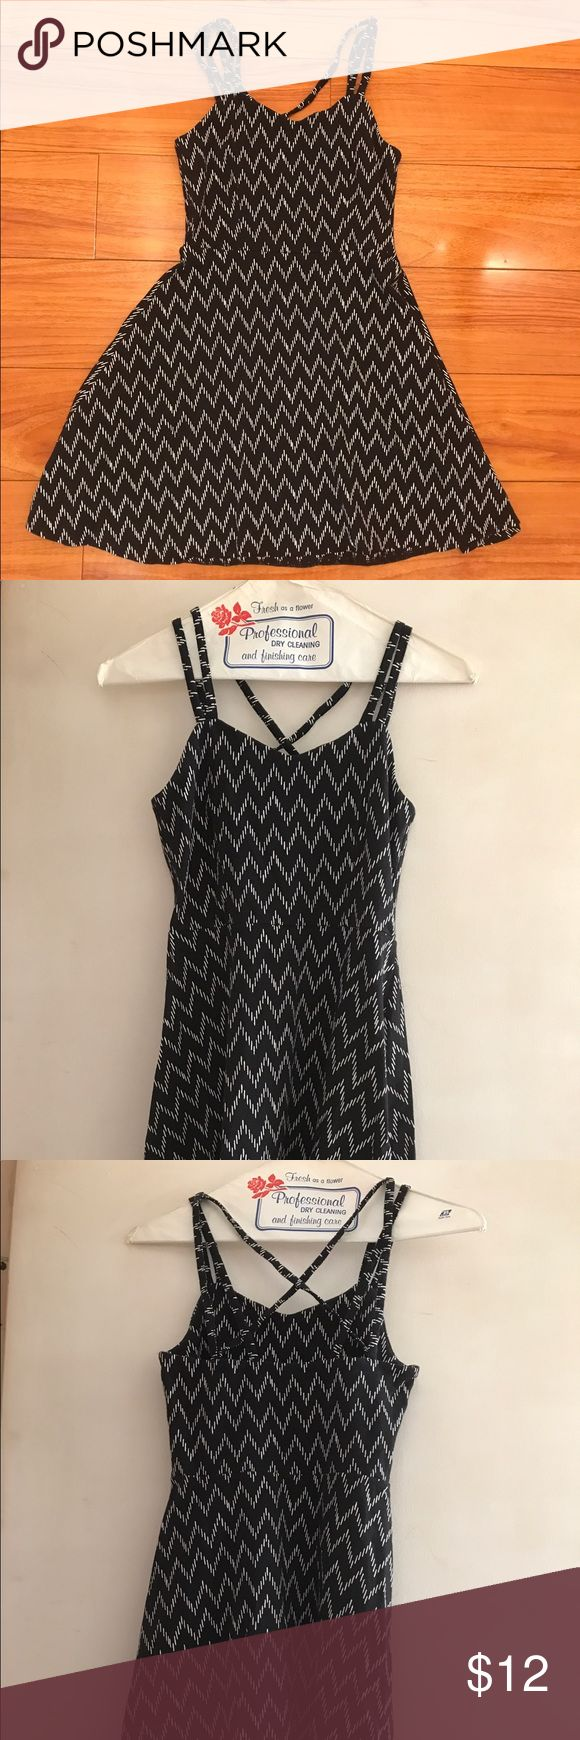 AEROPOSTALE Black and White Skater Dress Aeropostale Black and white patterned skater dress. Great for casual wear or semi- formal! Worn once. Price is negotiable. Aeropostale Dresses Mini